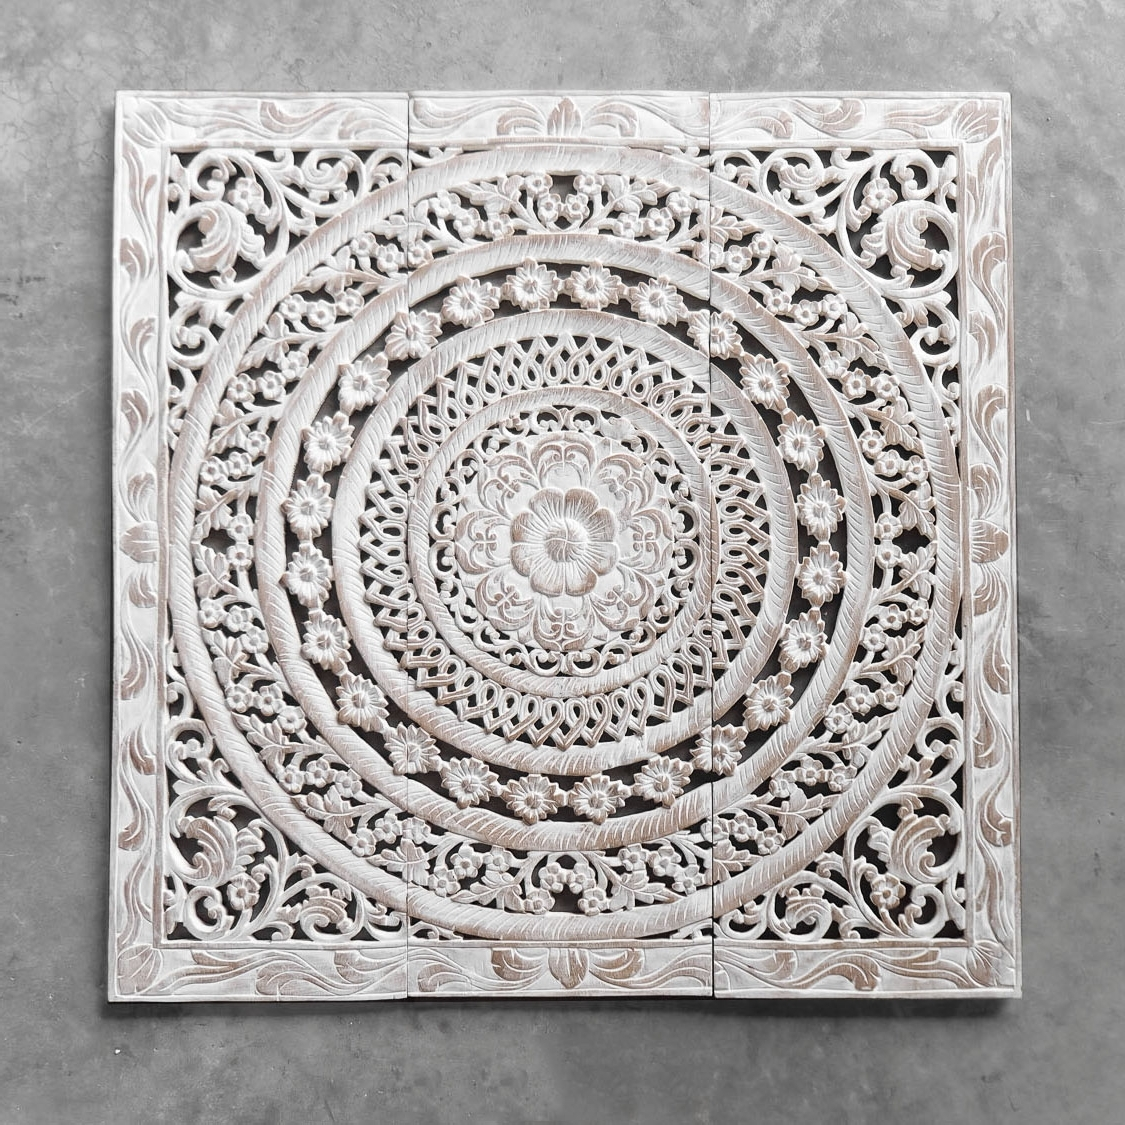 Wood Carved Wall Art Panels With Regard To Current Moroccan Decent Wood Carving Wall Art Hanging – Siam Sawadee (View 15 of 15)